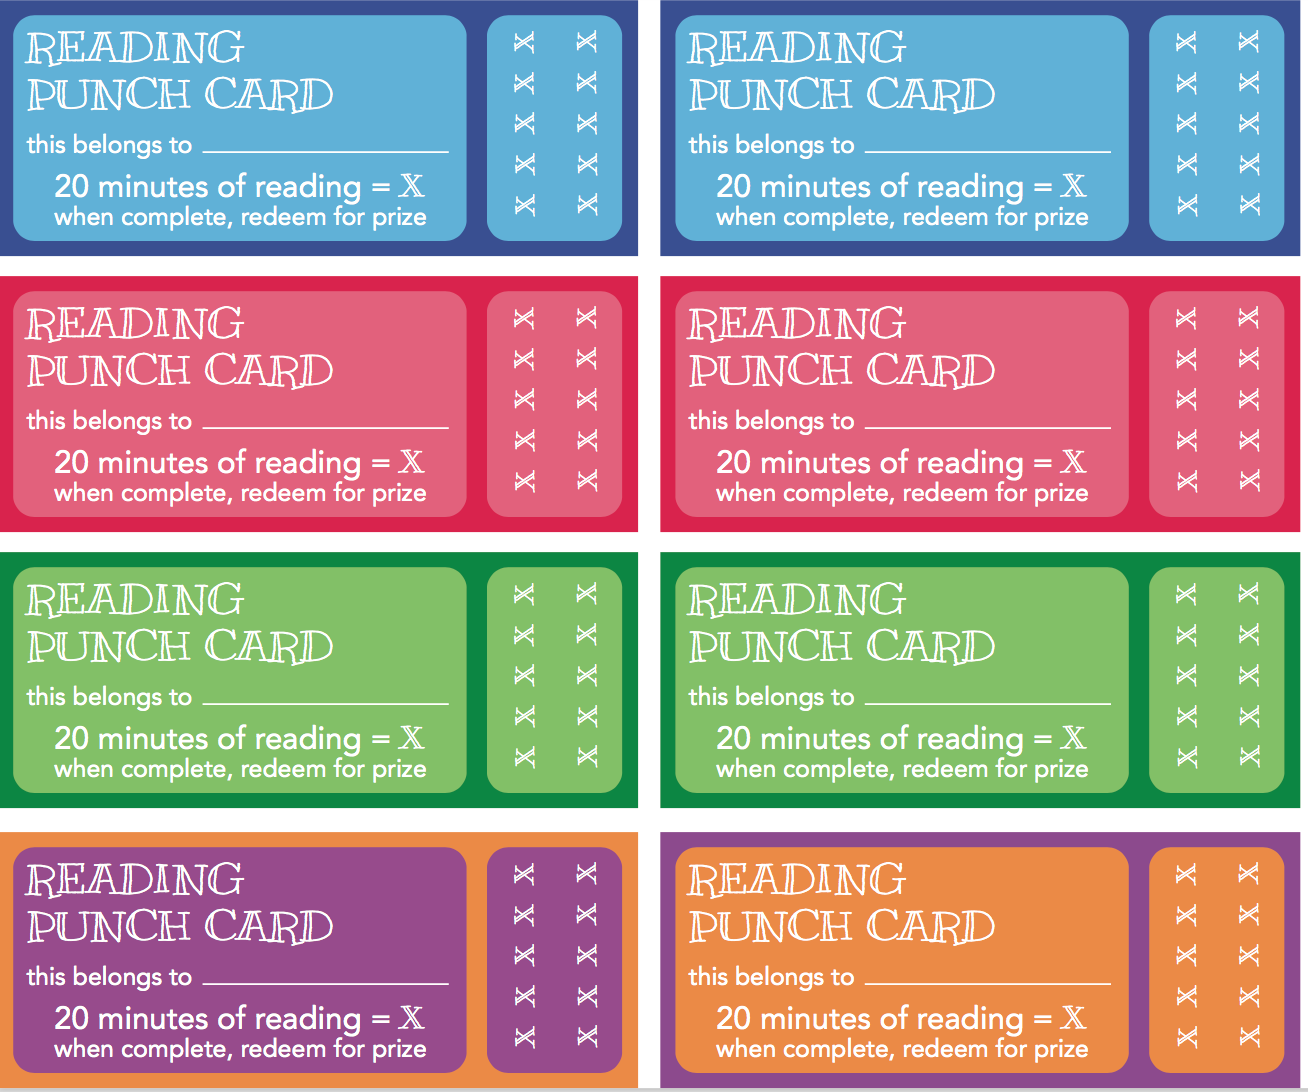 graphic regarding Free Printable Punch Card Template named Reading through Punch Card Printable Satsuma Options